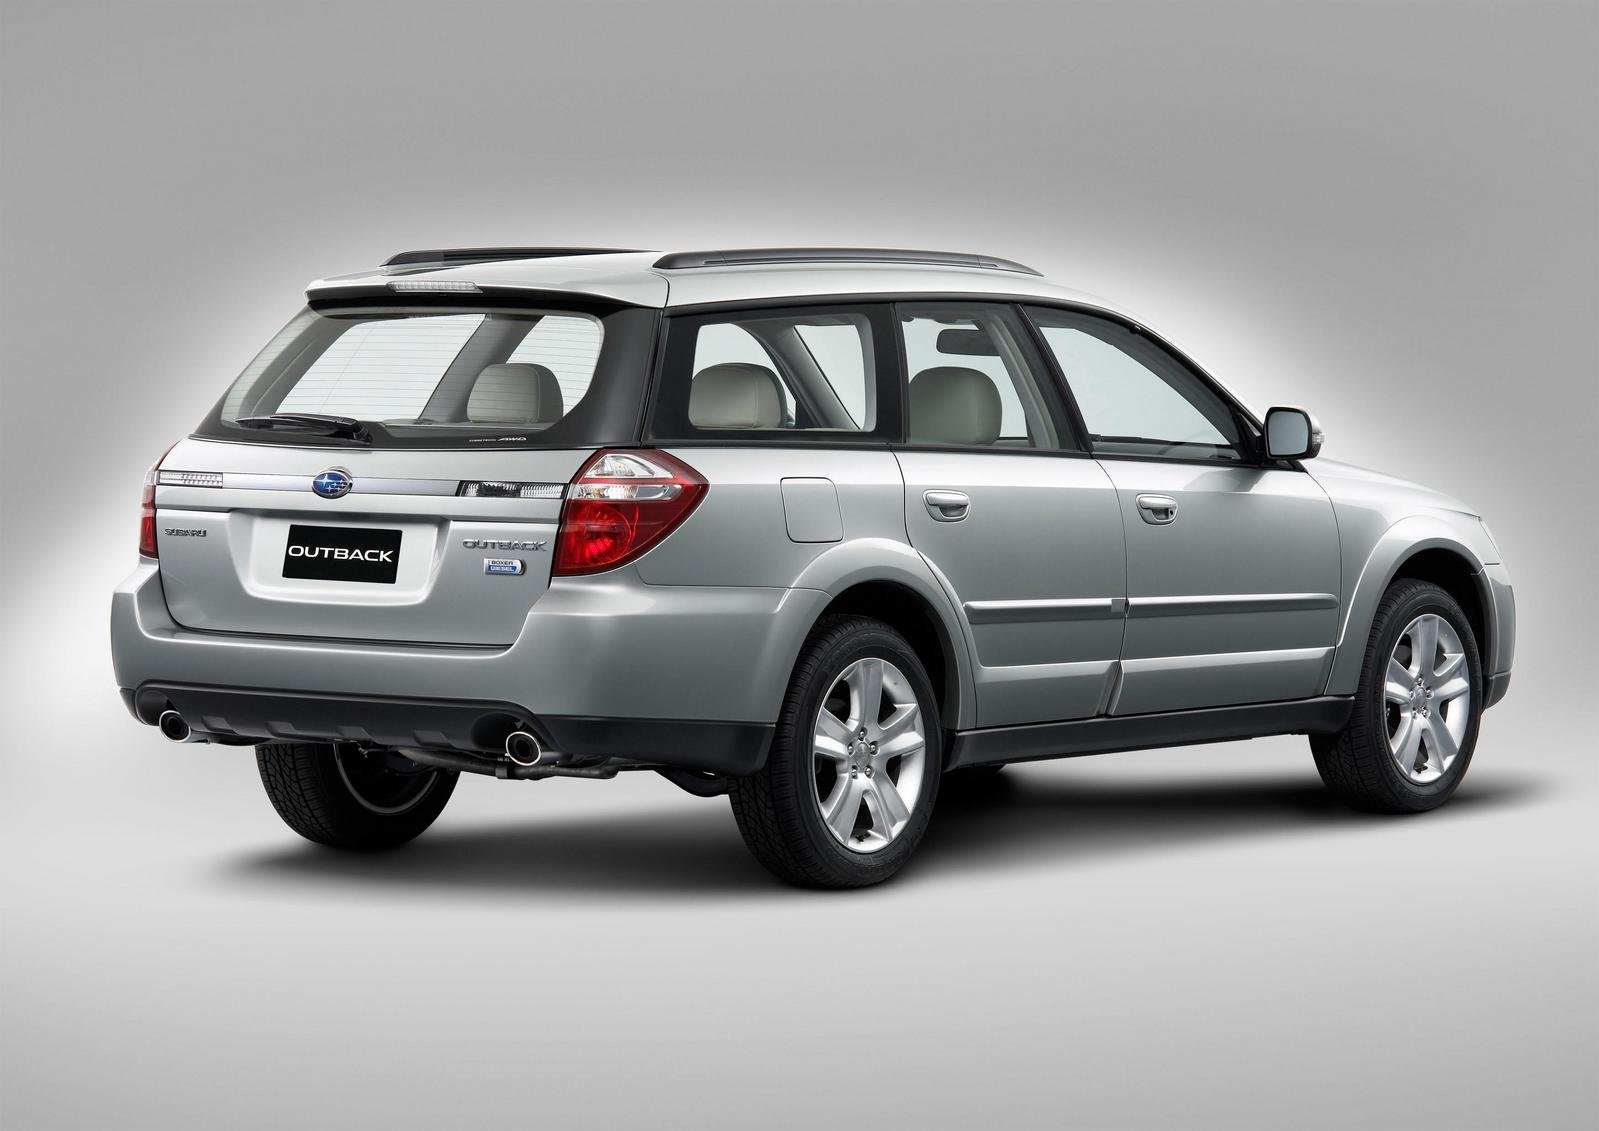 2008 subaru legacy 2 0d and outback 2 0d picture 231277. Black Bedroom Furniture Sets. Home Design Ideas